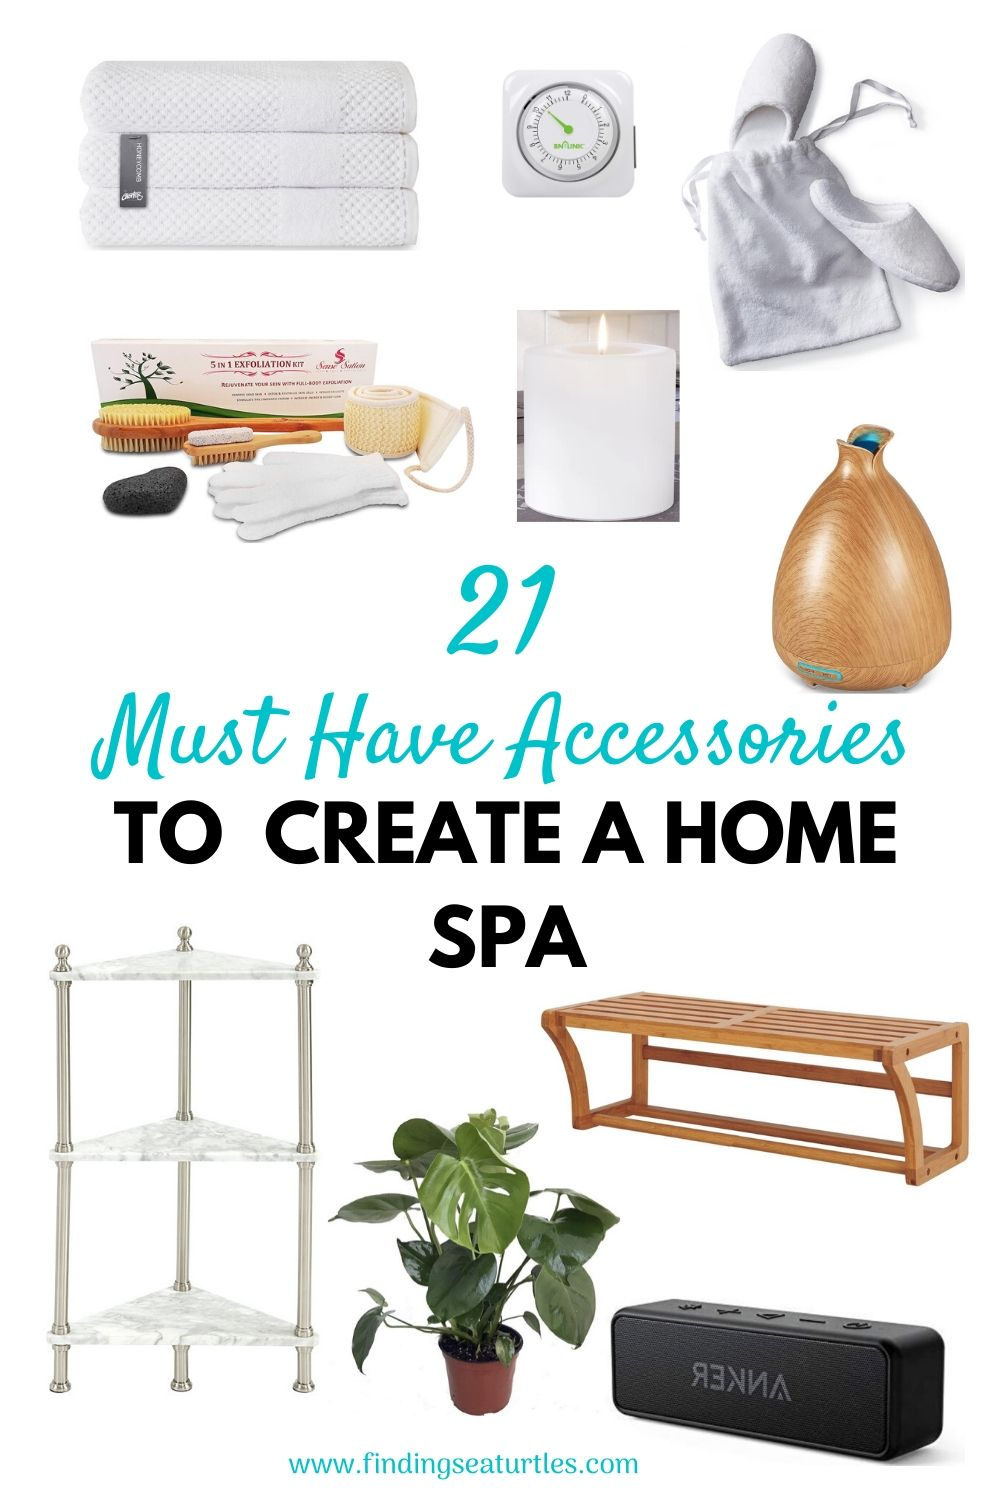 21 Must Have Accessories to Create a Home Spa #Spa #bathroom #HomeSpa #PamperYourself #SpaAccessories #MeTime #BathSpa #DIYHomeSpa #Relax #Soothing